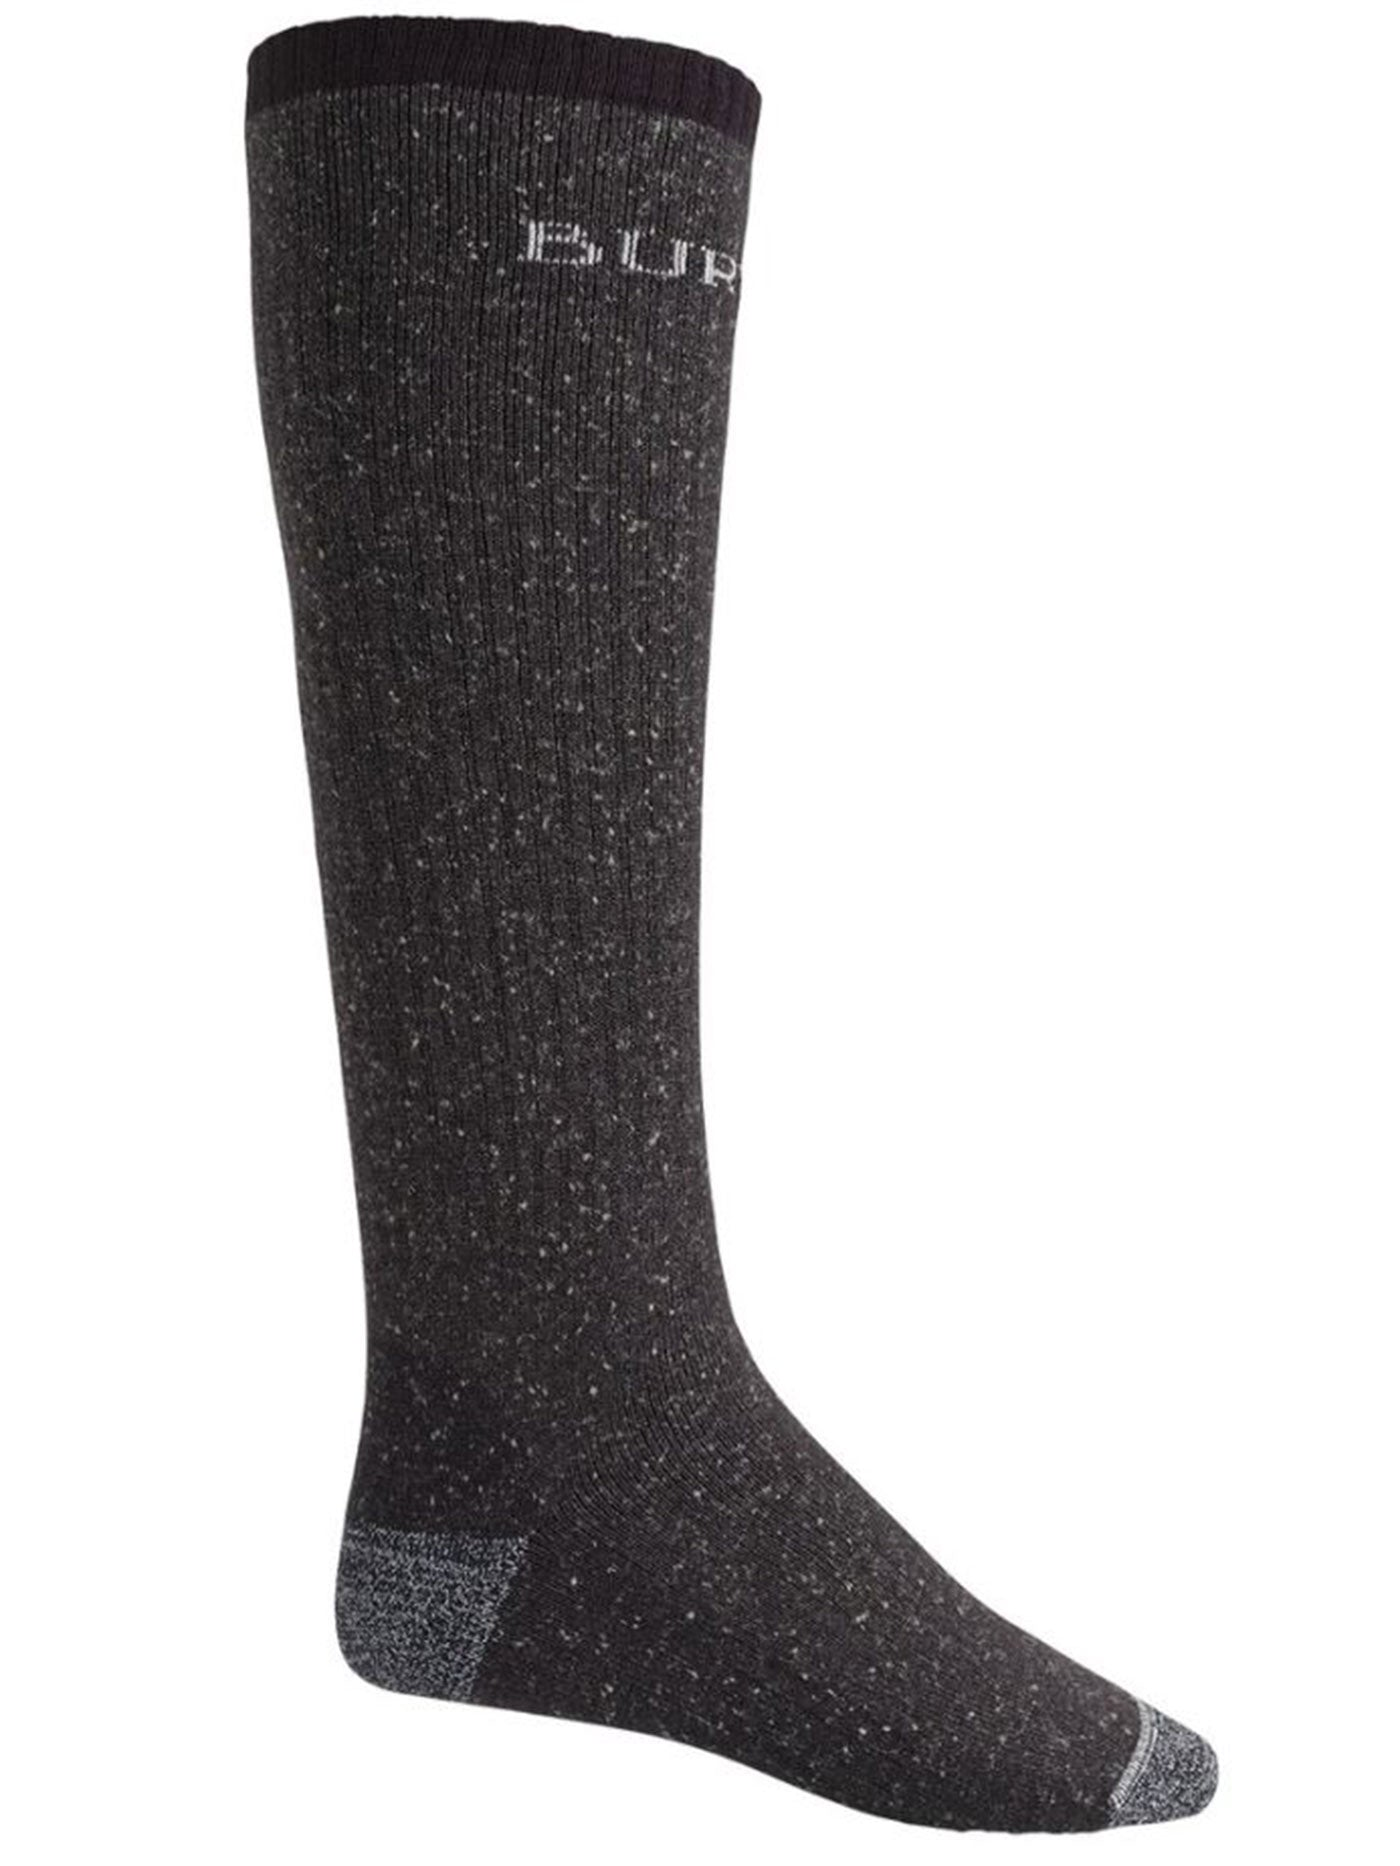 Performance Expedition Socks